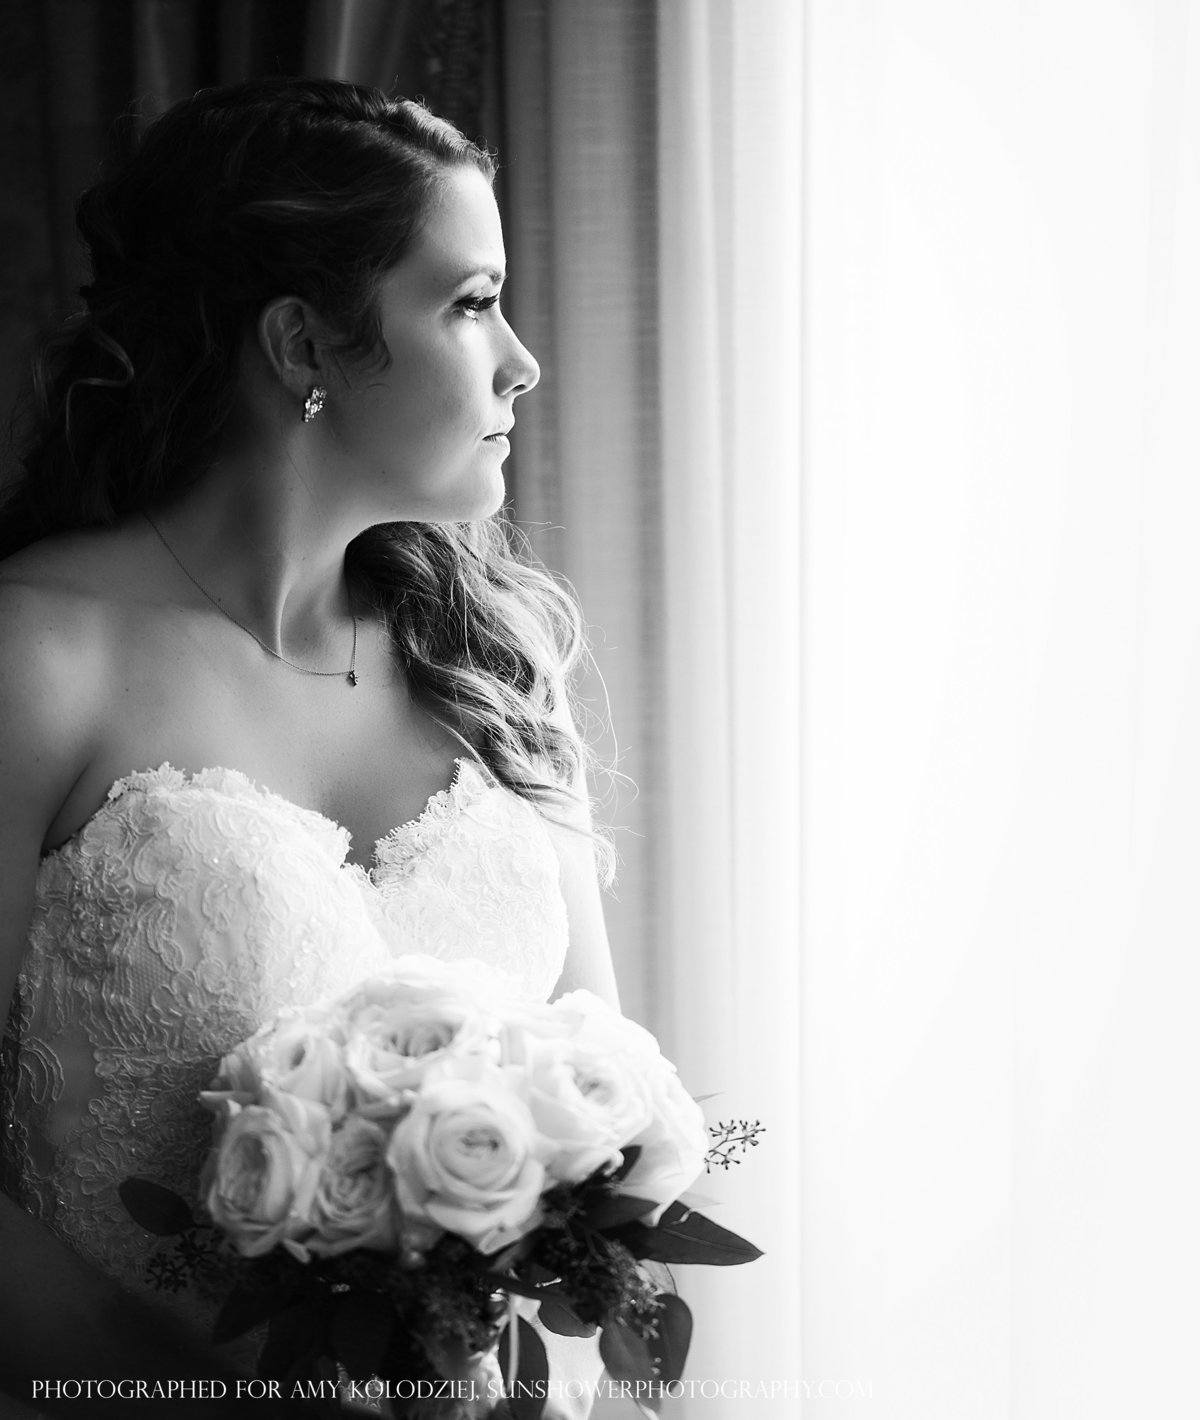 charlotte wedding photographer jamie lucido captures a peaceful moment as the bride awaits her first look with her father